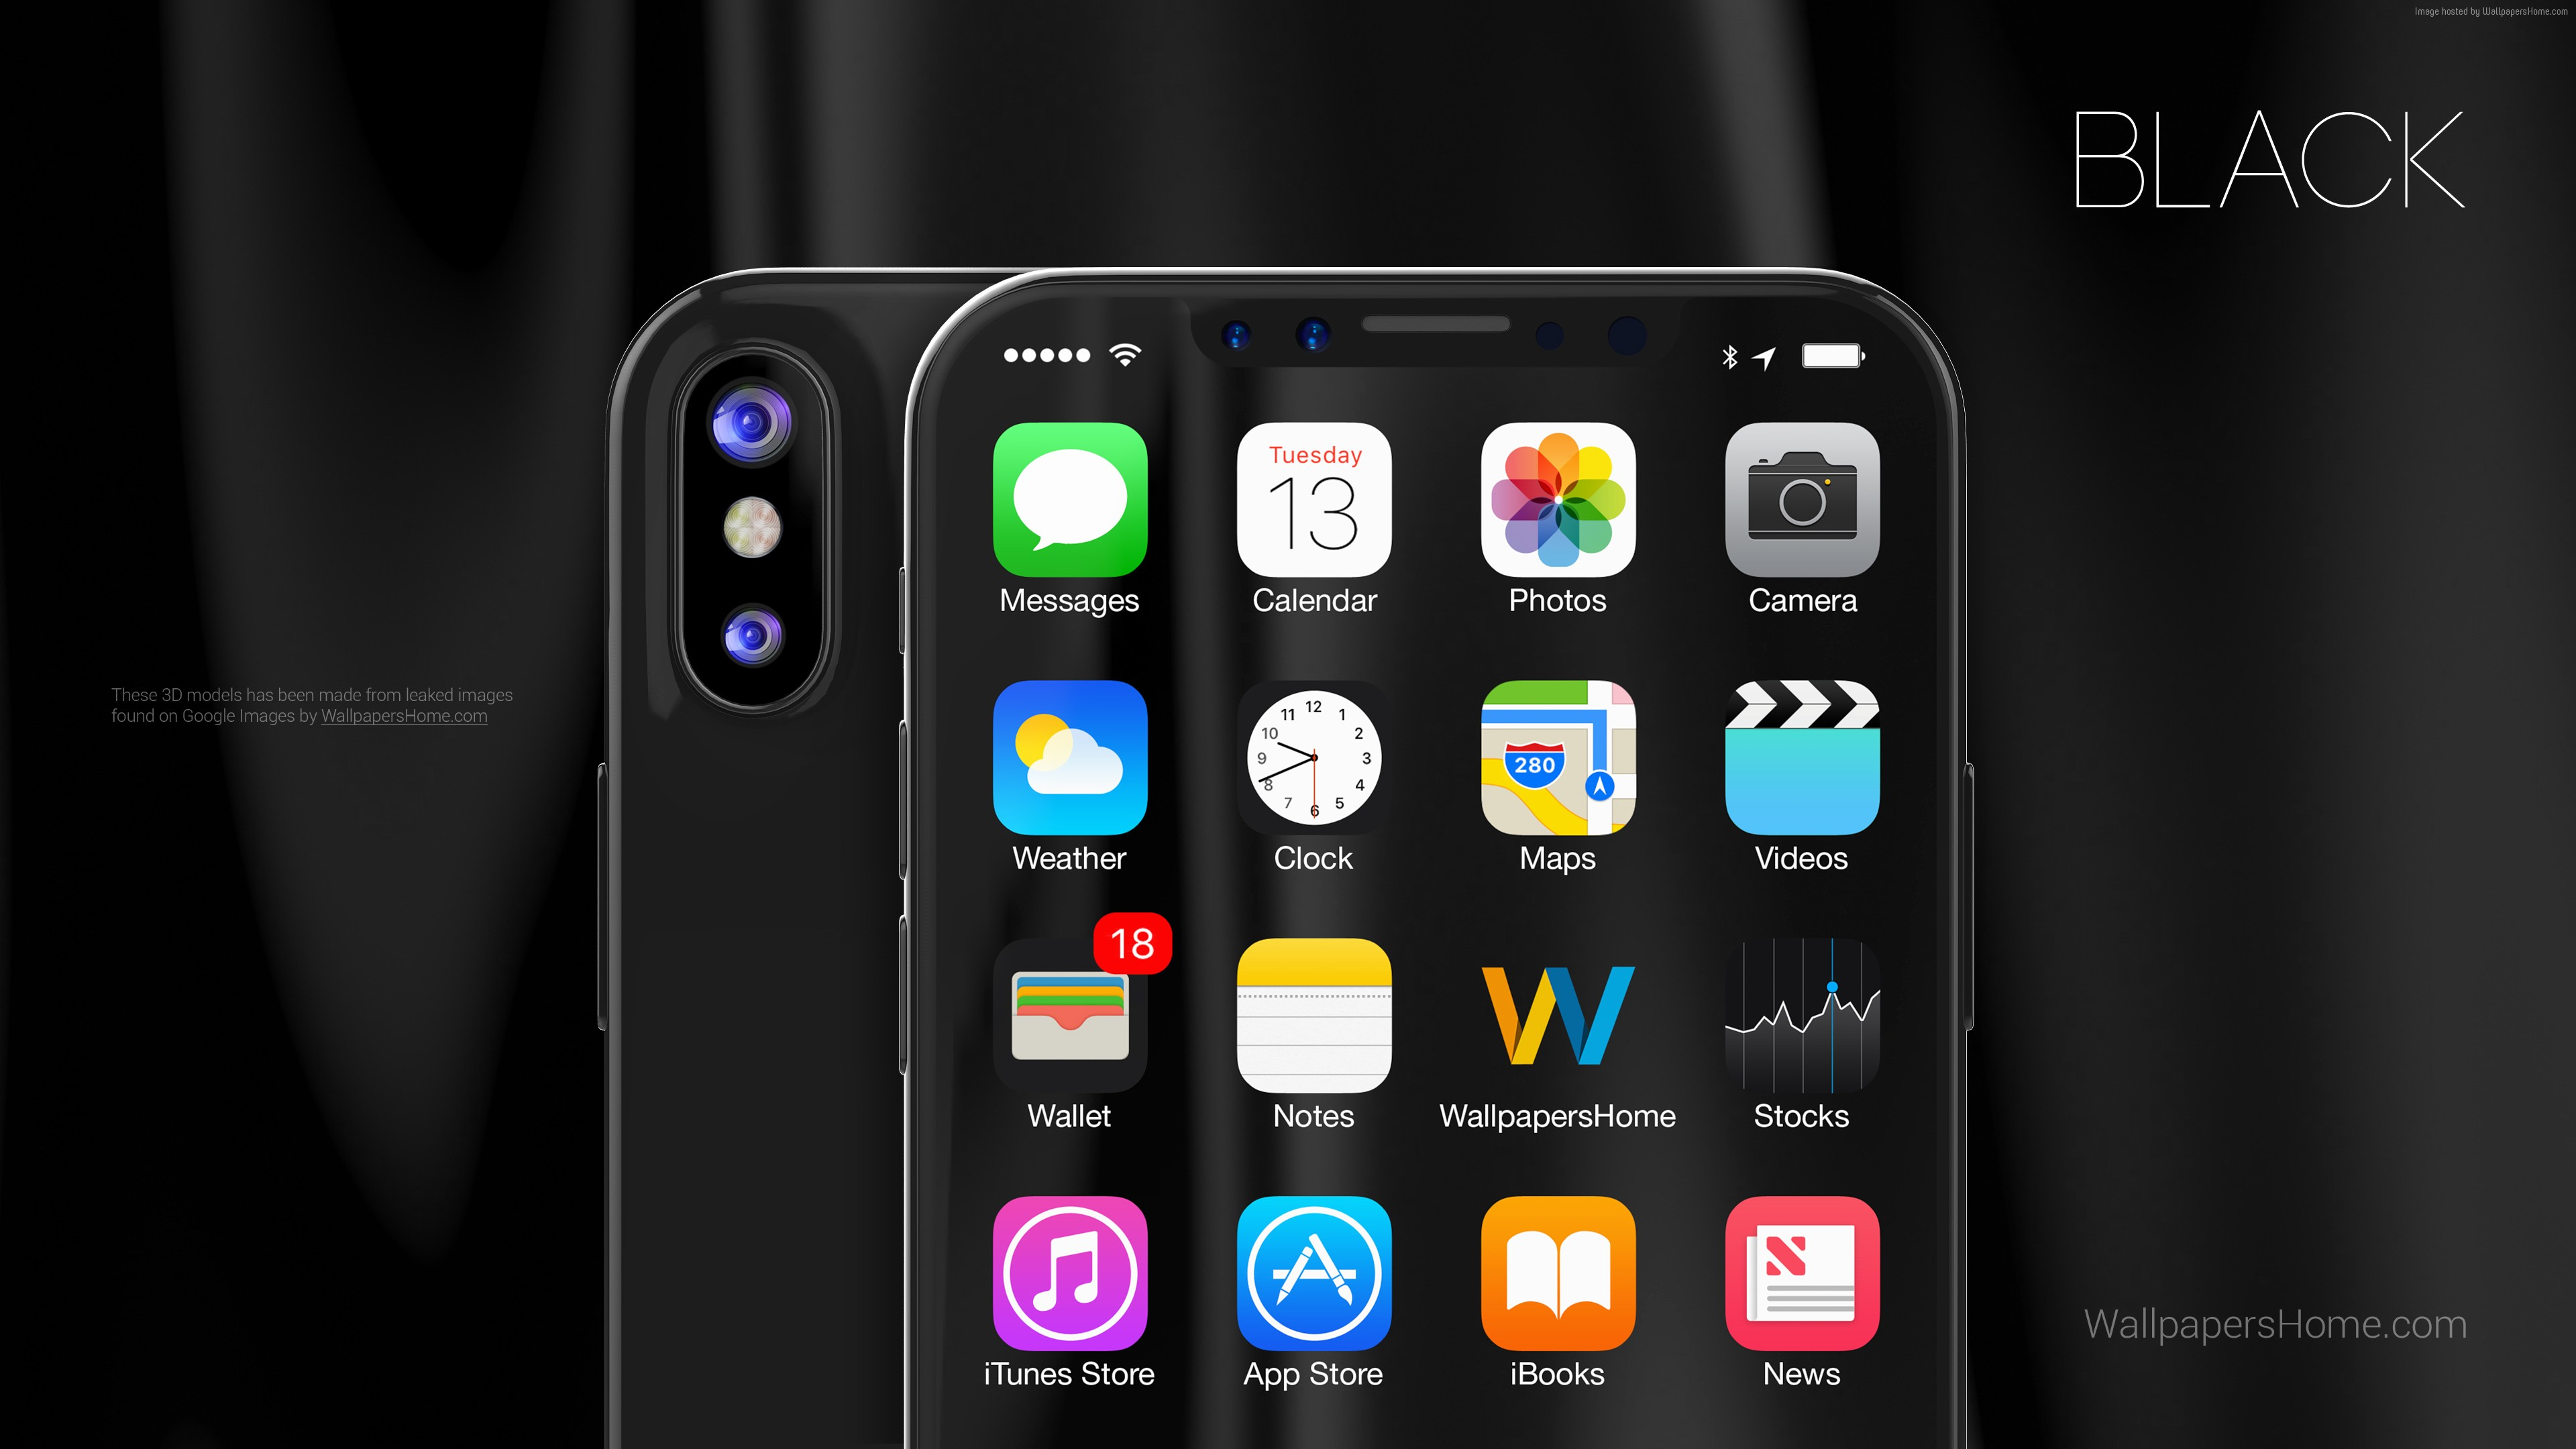 Wallpaper%20iPhone%20X,%20black,%203D,%20leaked,%20WWDC%202017,%204k,%20Hi Tech%20626548210